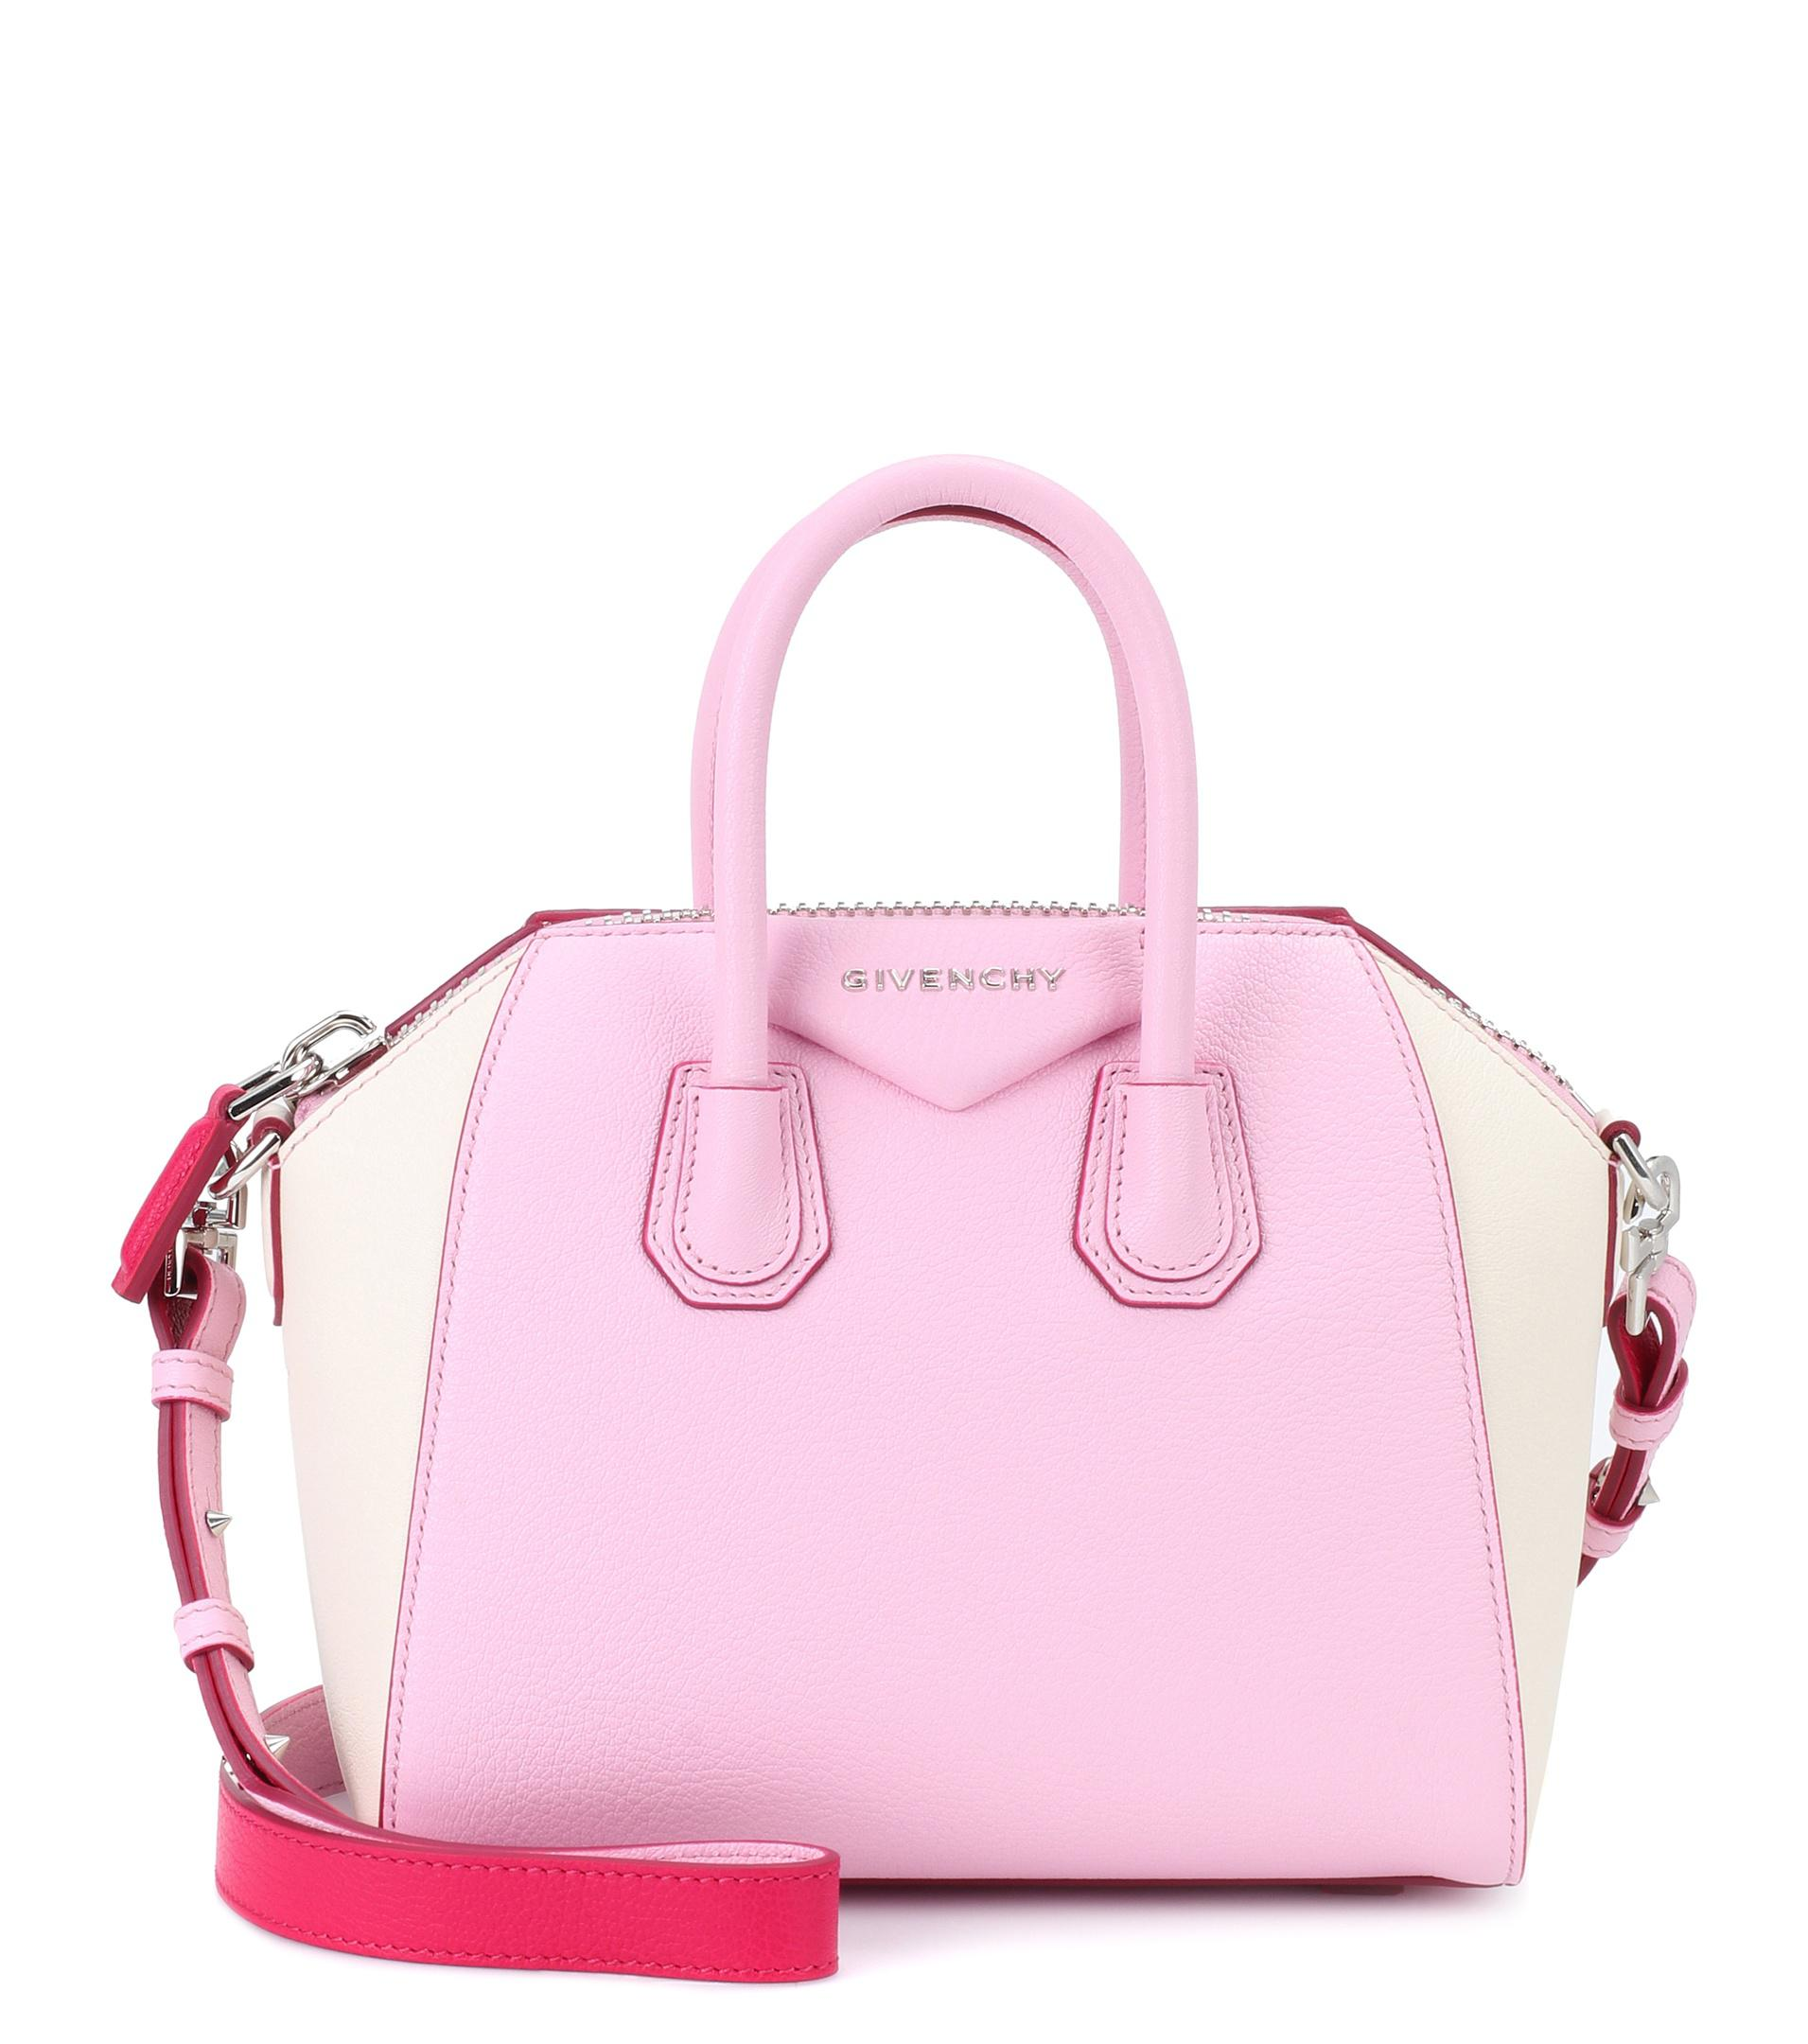 Givenchy Pink Antigona Mini Leather Shoulder Bag Lyst View Fullscreen